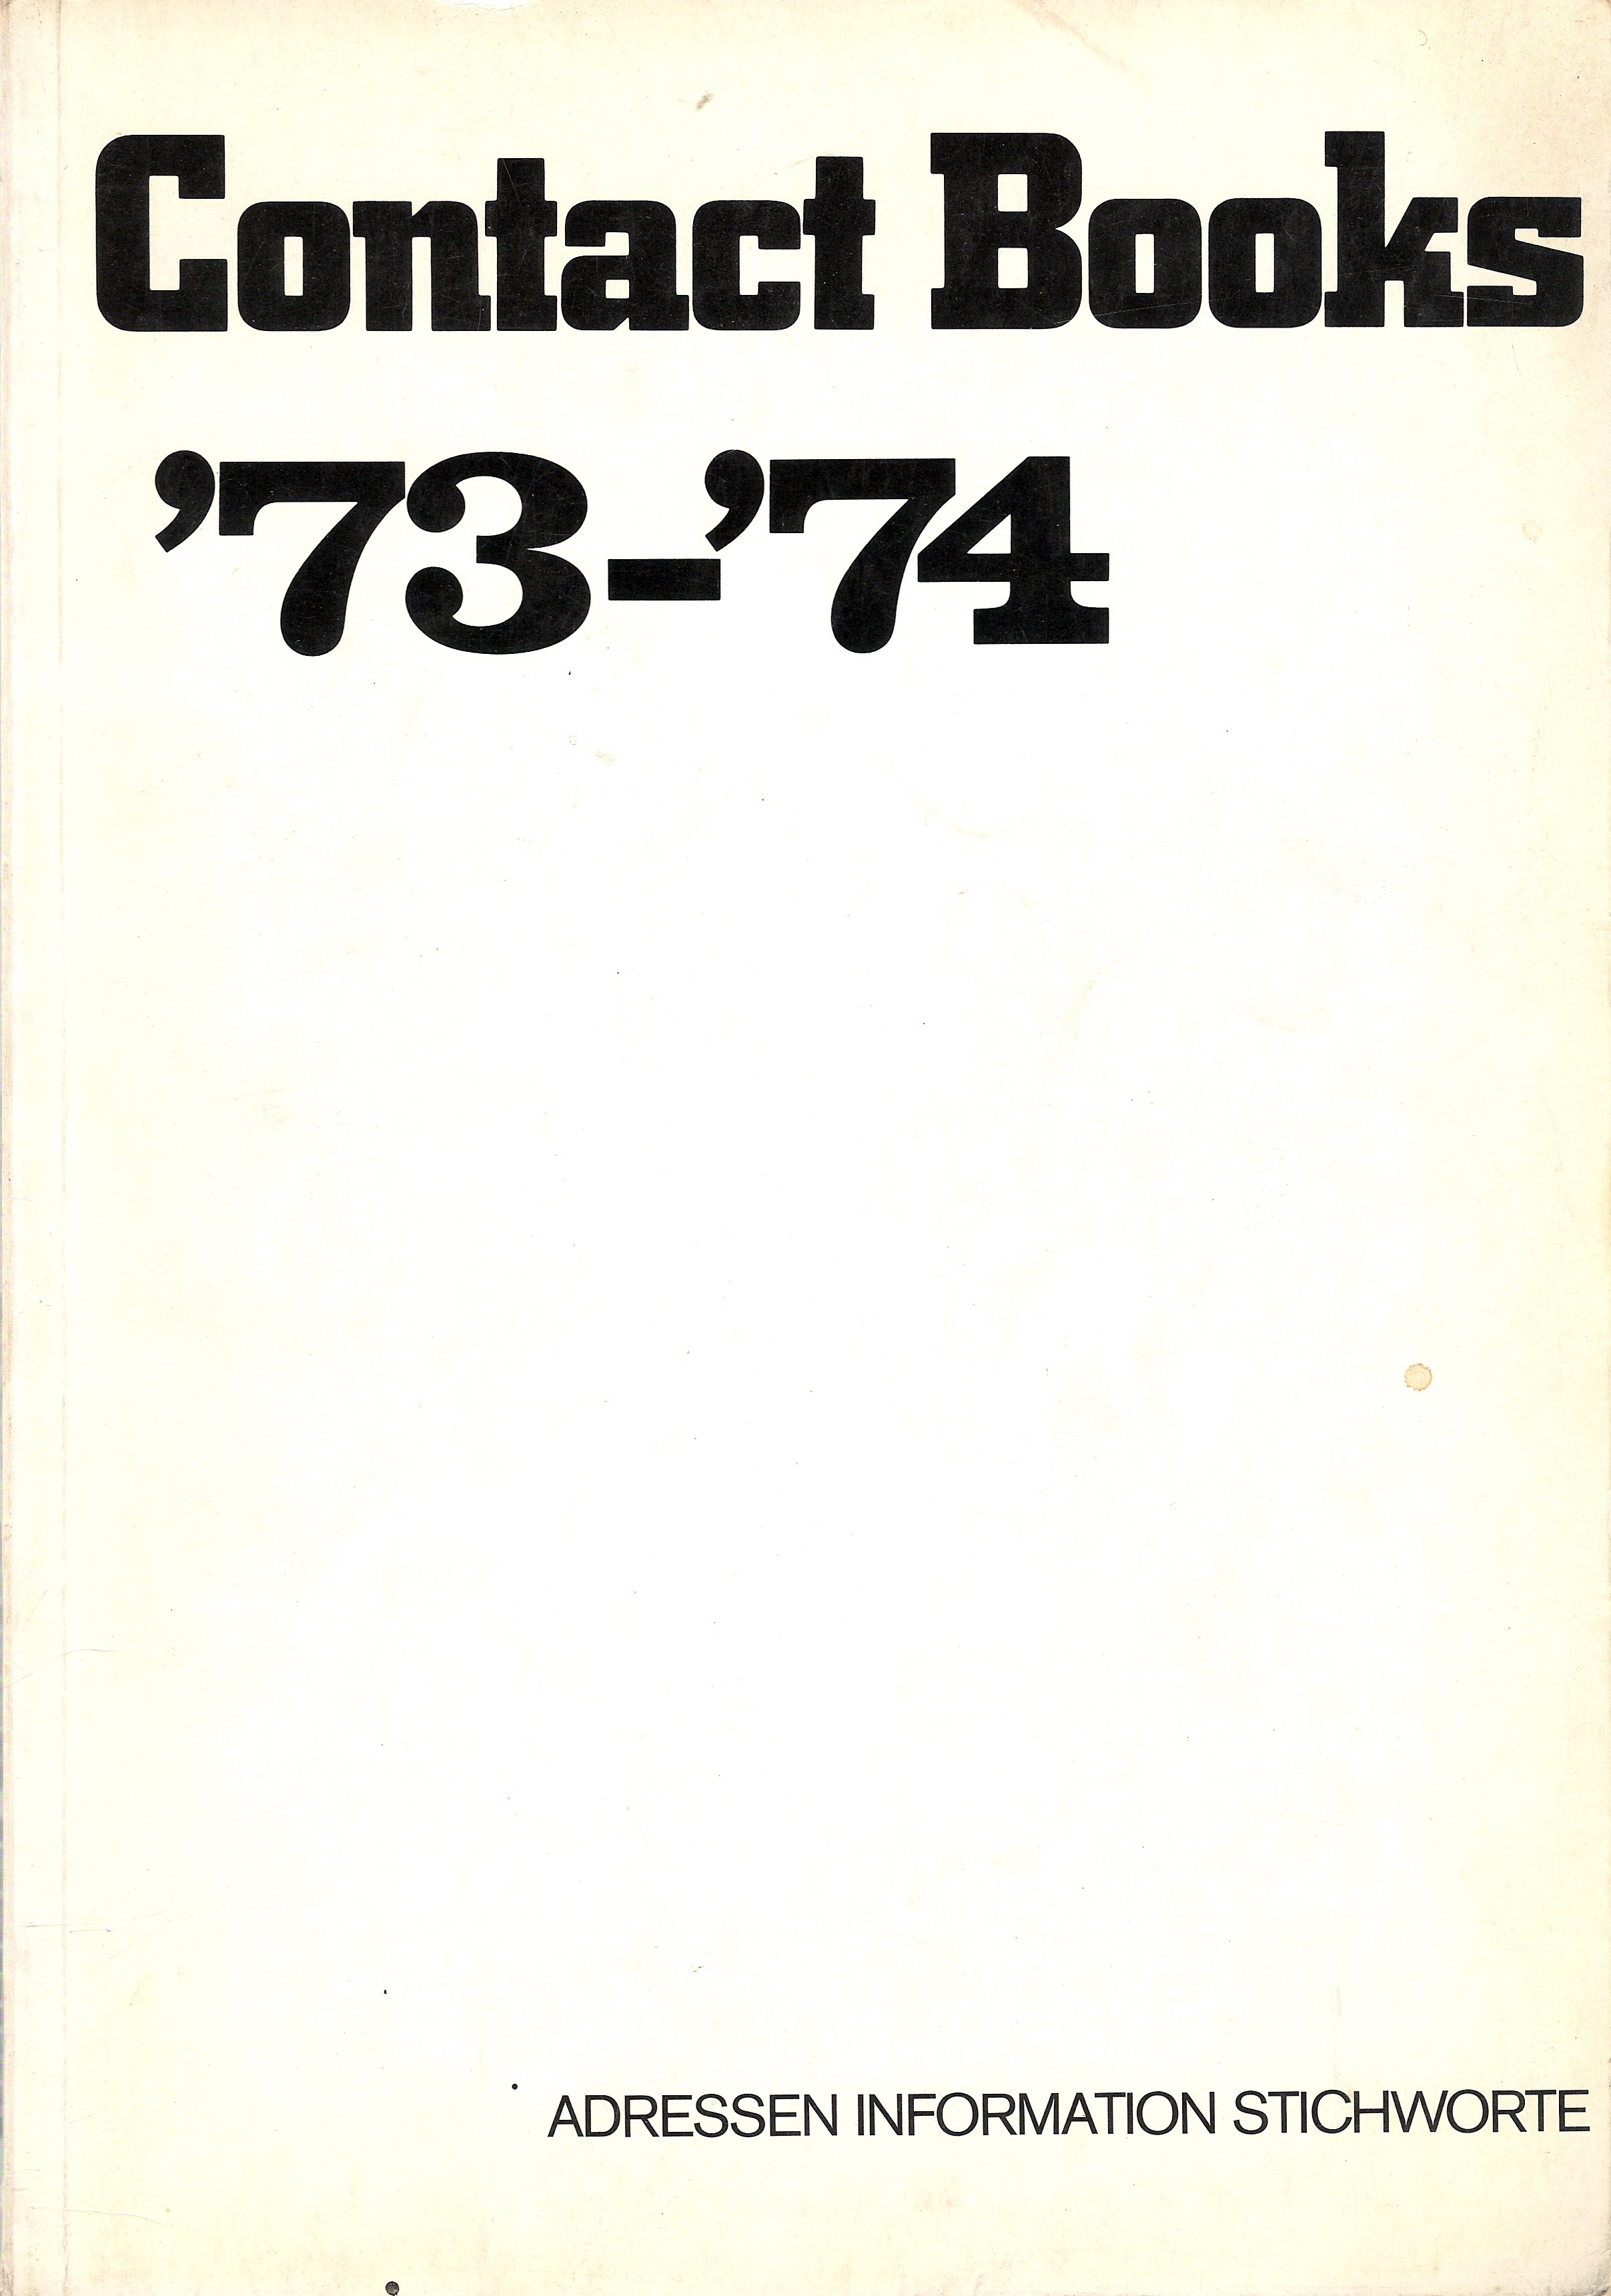 1973.4 FEHLT Contact Books 1973